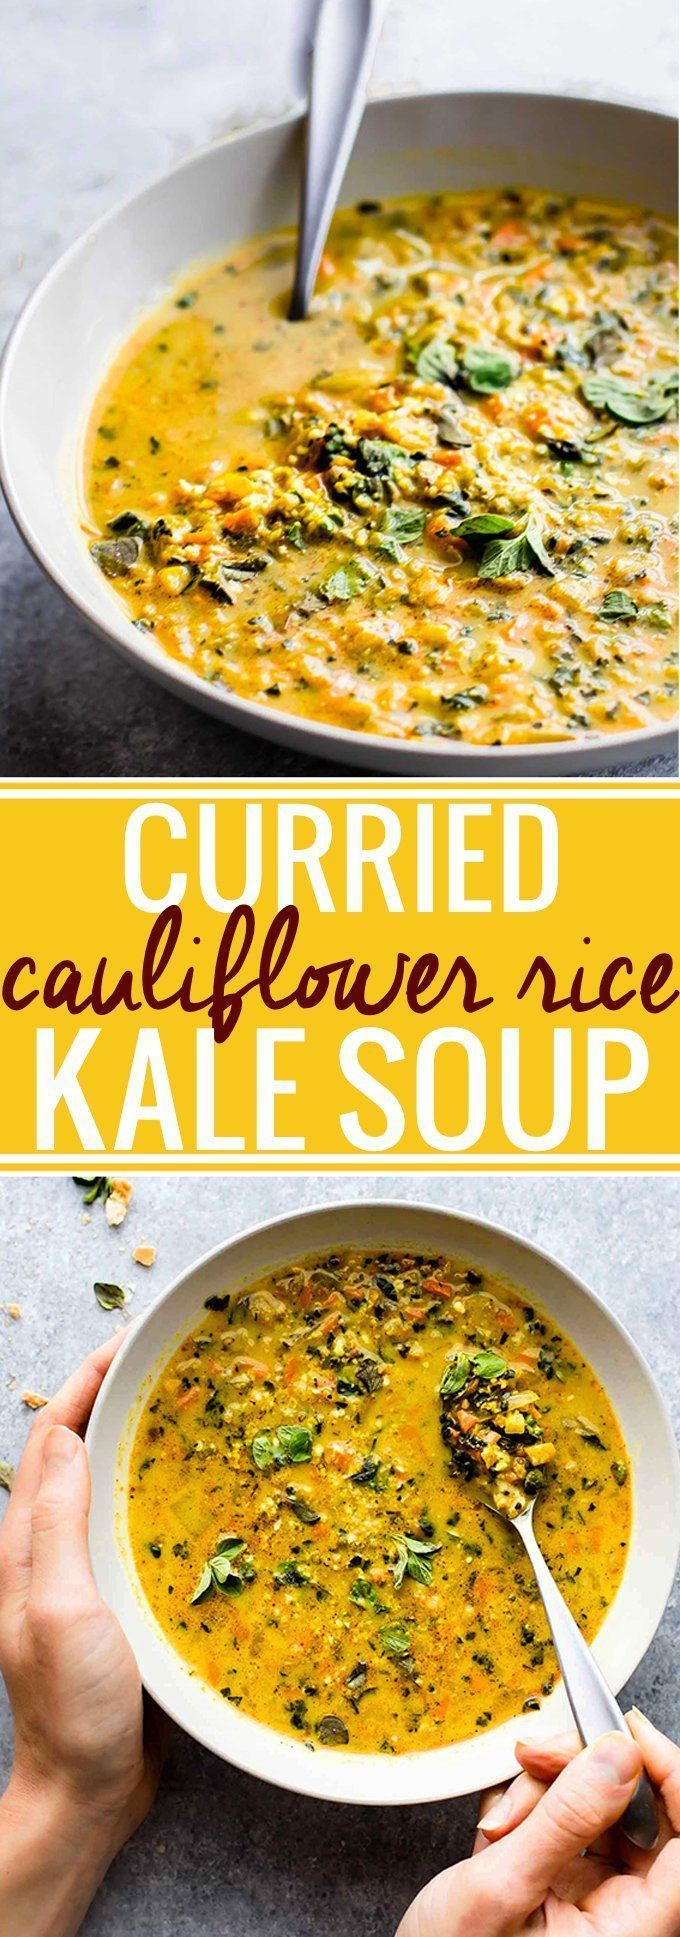 "This Curried Cauliflower Rice Kale Soup is one flavorful healthy soup to keep you warm this season. An easy paleo soup recipe for a nutritious meal-in-a-bowl. Roasted curried cauliflower""rice"" with kale and even moreveggies to fill your bowl! A delicio"